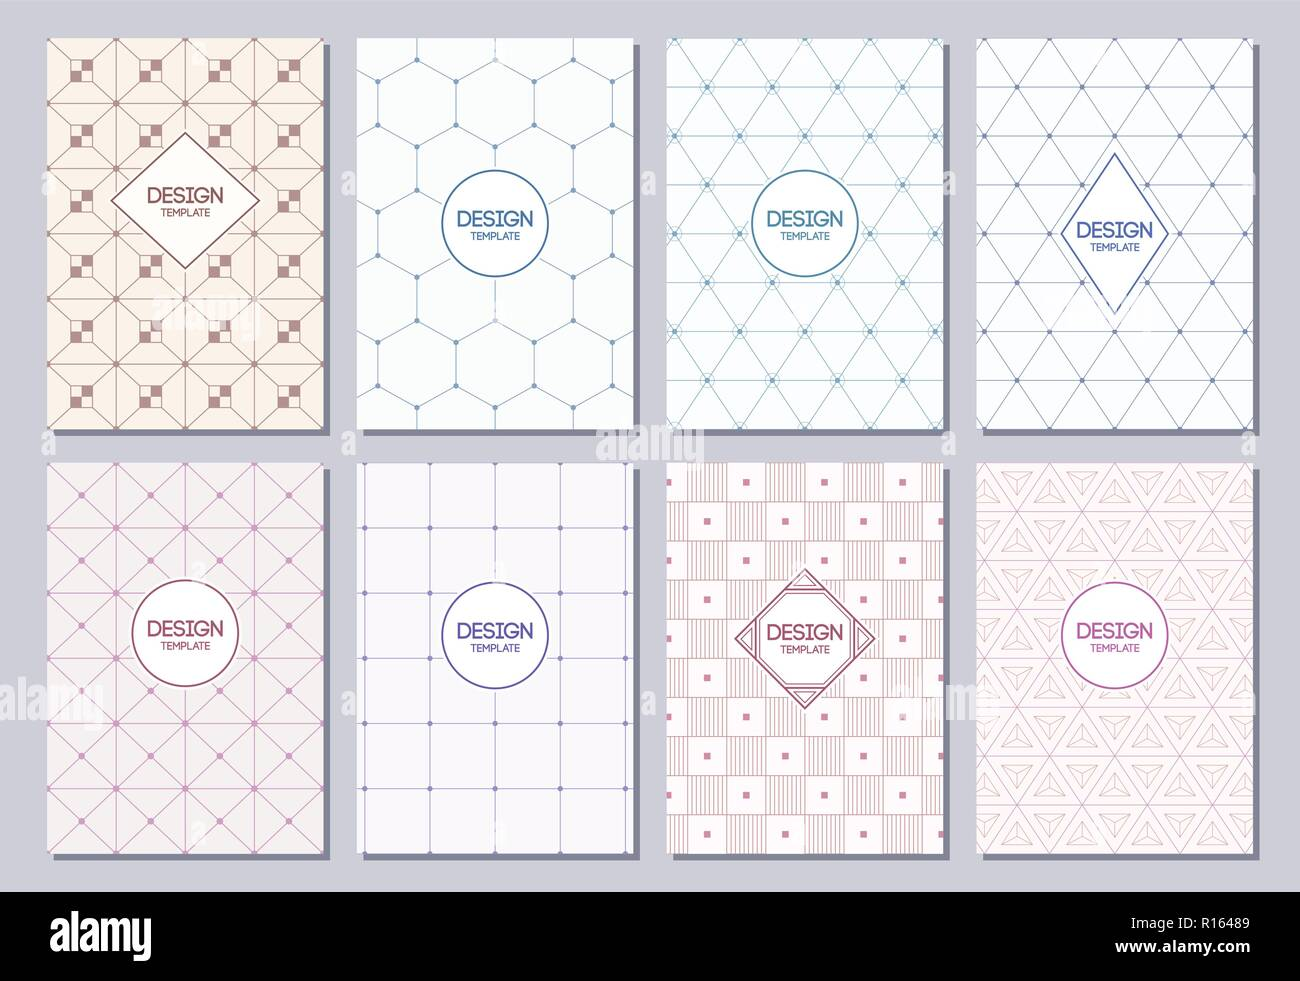 Set Of Flyers Posters Banners Placards Brochure Design Templates A6 Size Graphic For Logo Labels And Badges Abstract Geometric